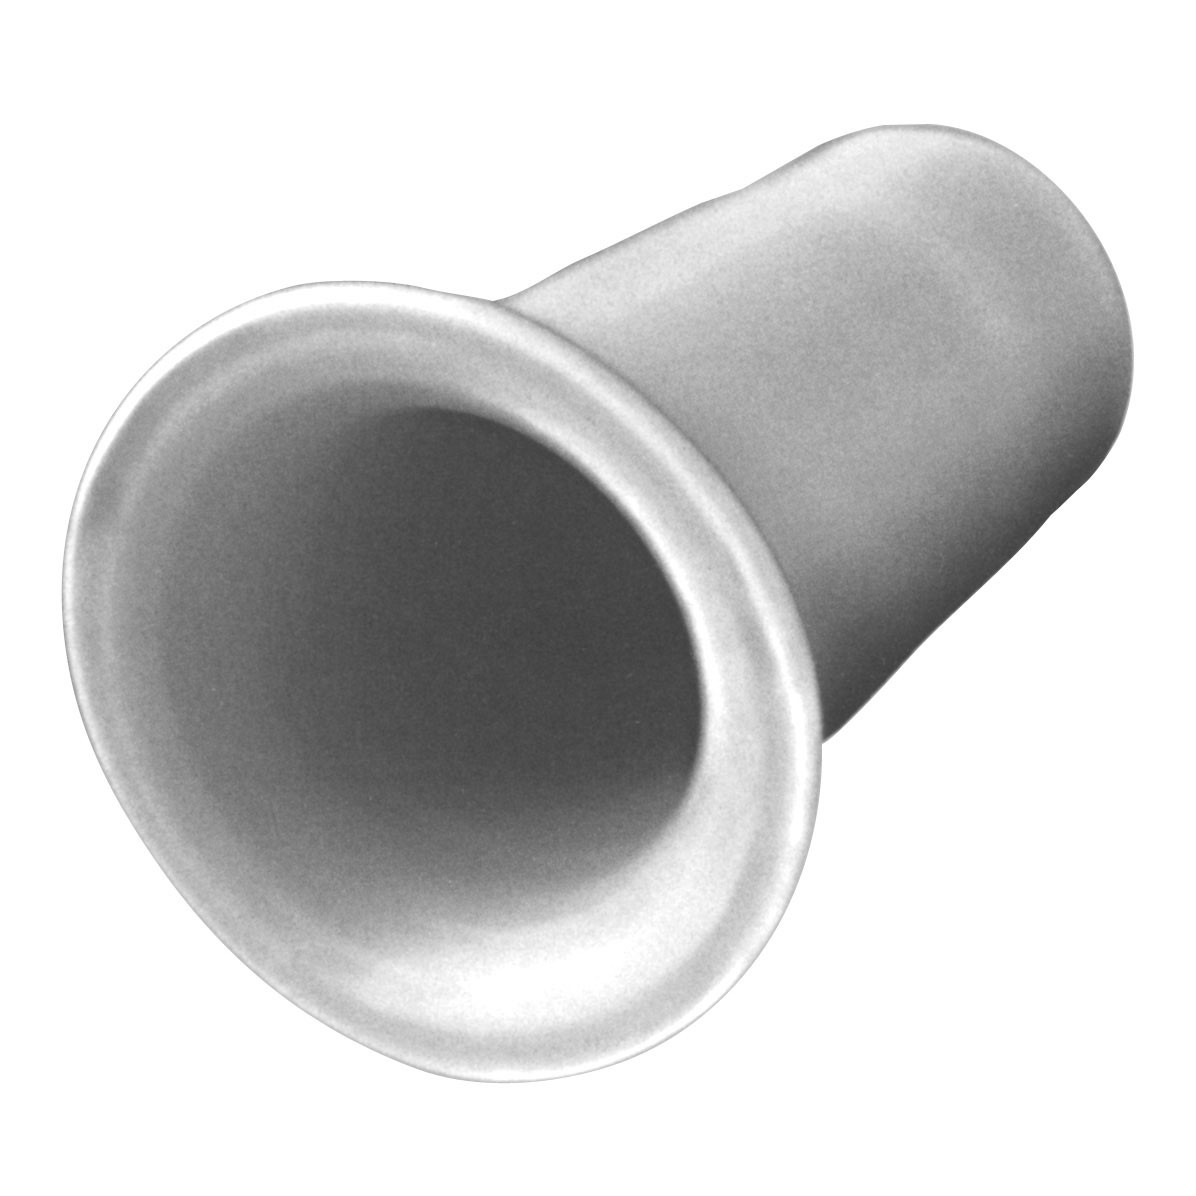 Drive DeVilbiss Healthcare RhinoGuard Atomizer Tip Covers, Refill Pack of 100